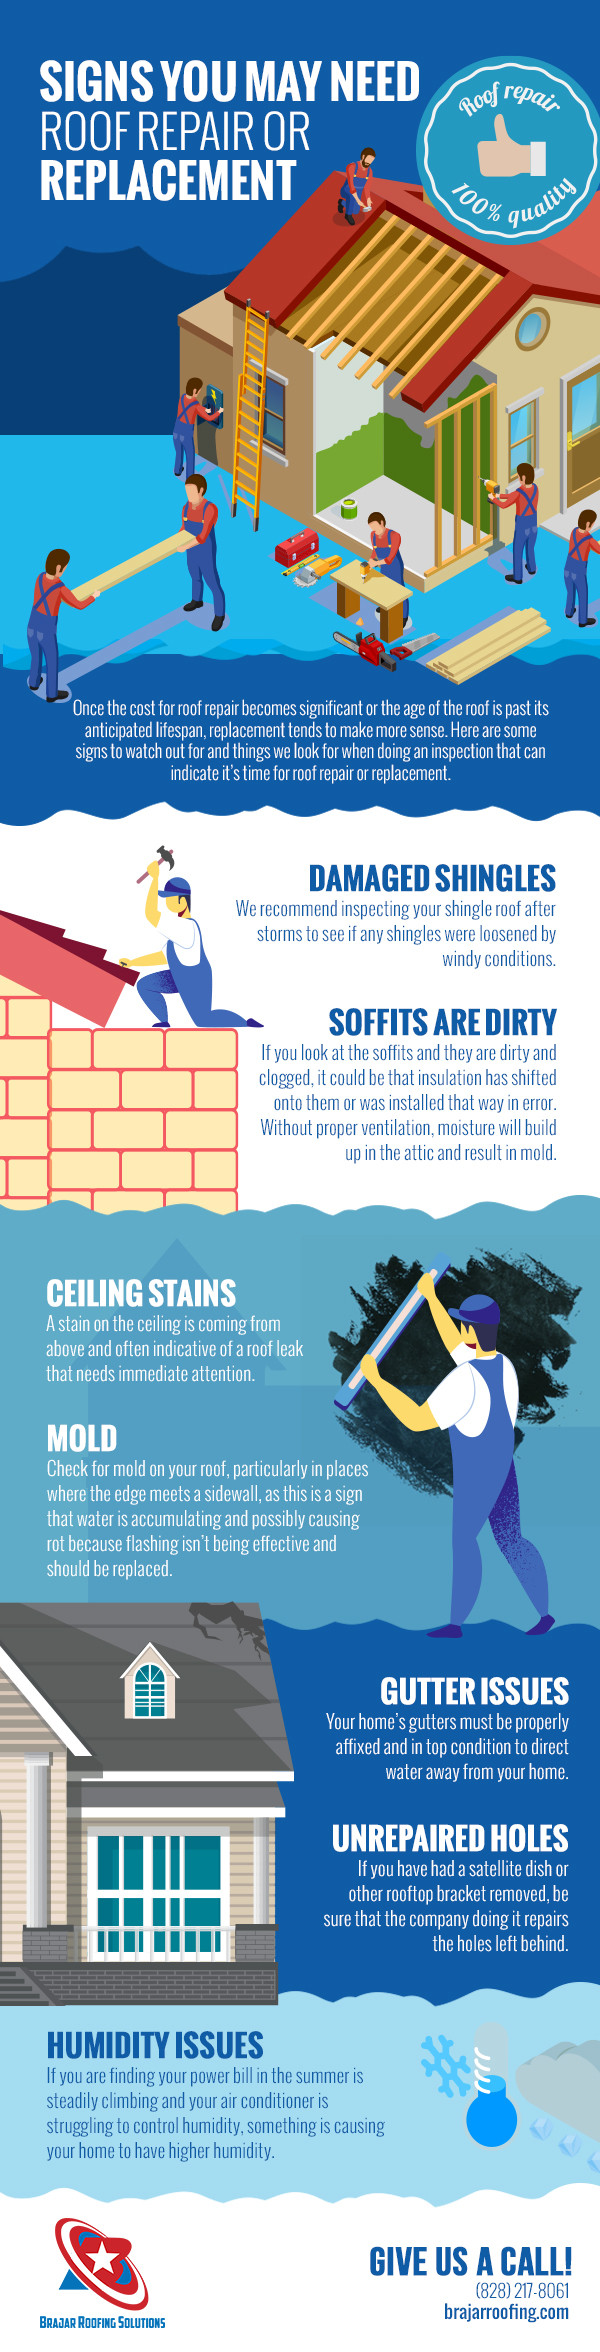 Signs You May Need Roof Repair or Replacement [infographic]